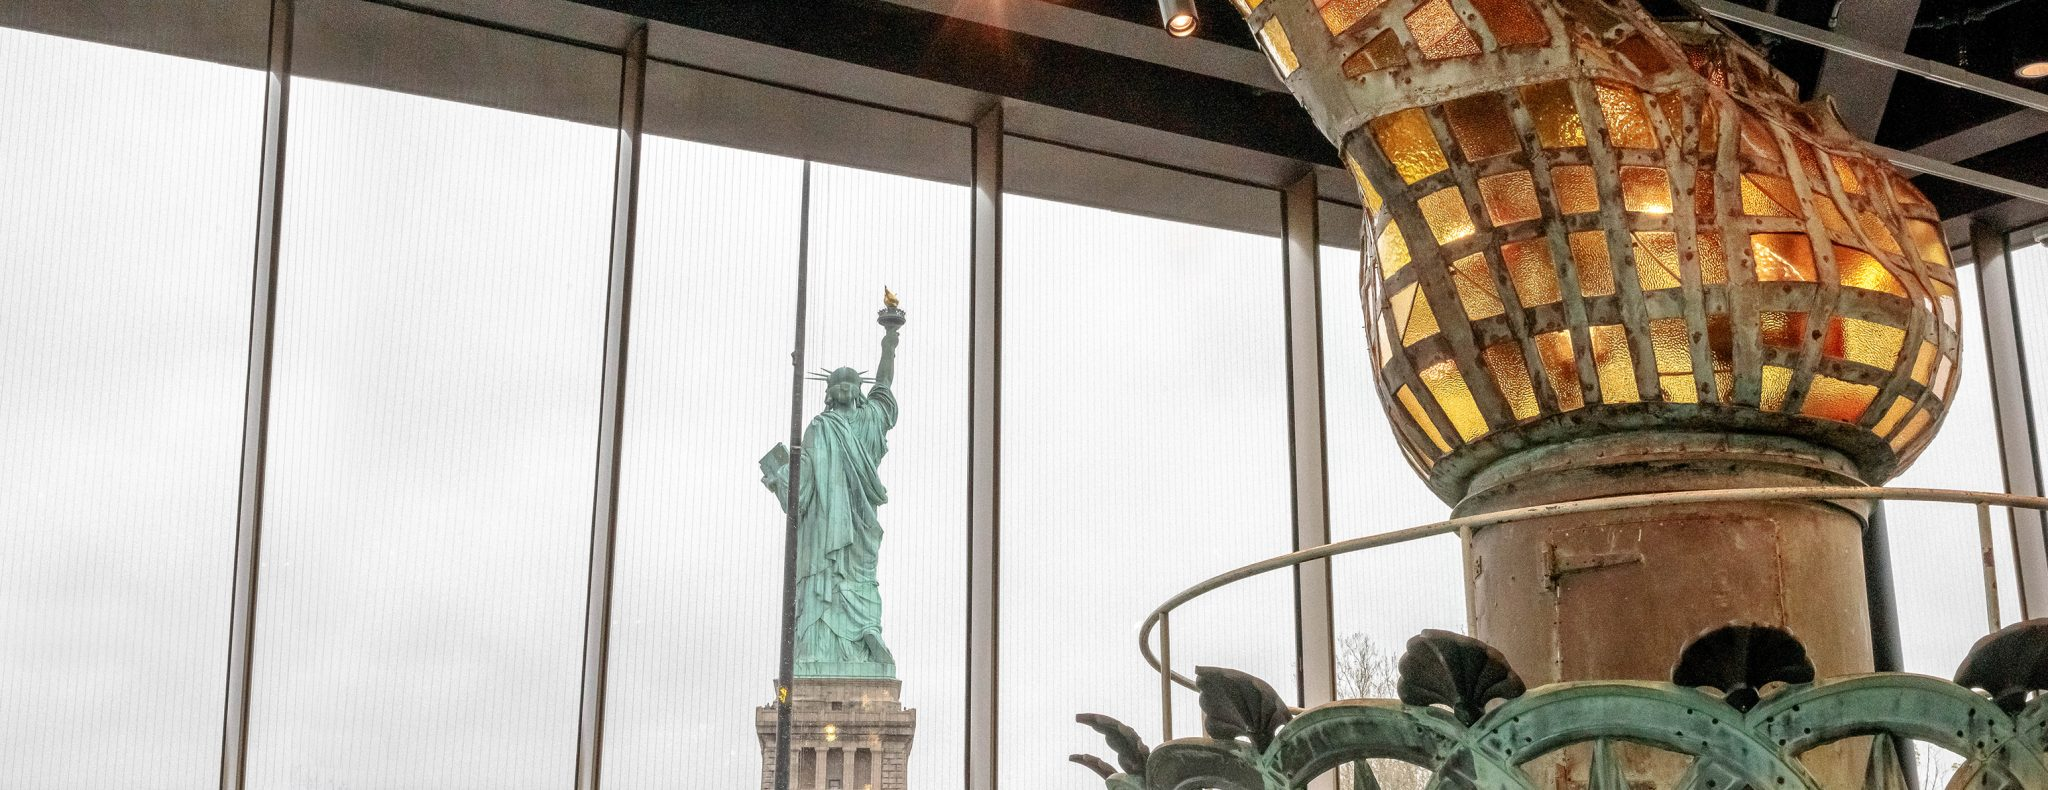 The Statue of Liberty in the distance and a close-up of the original torch in an accessible museum.